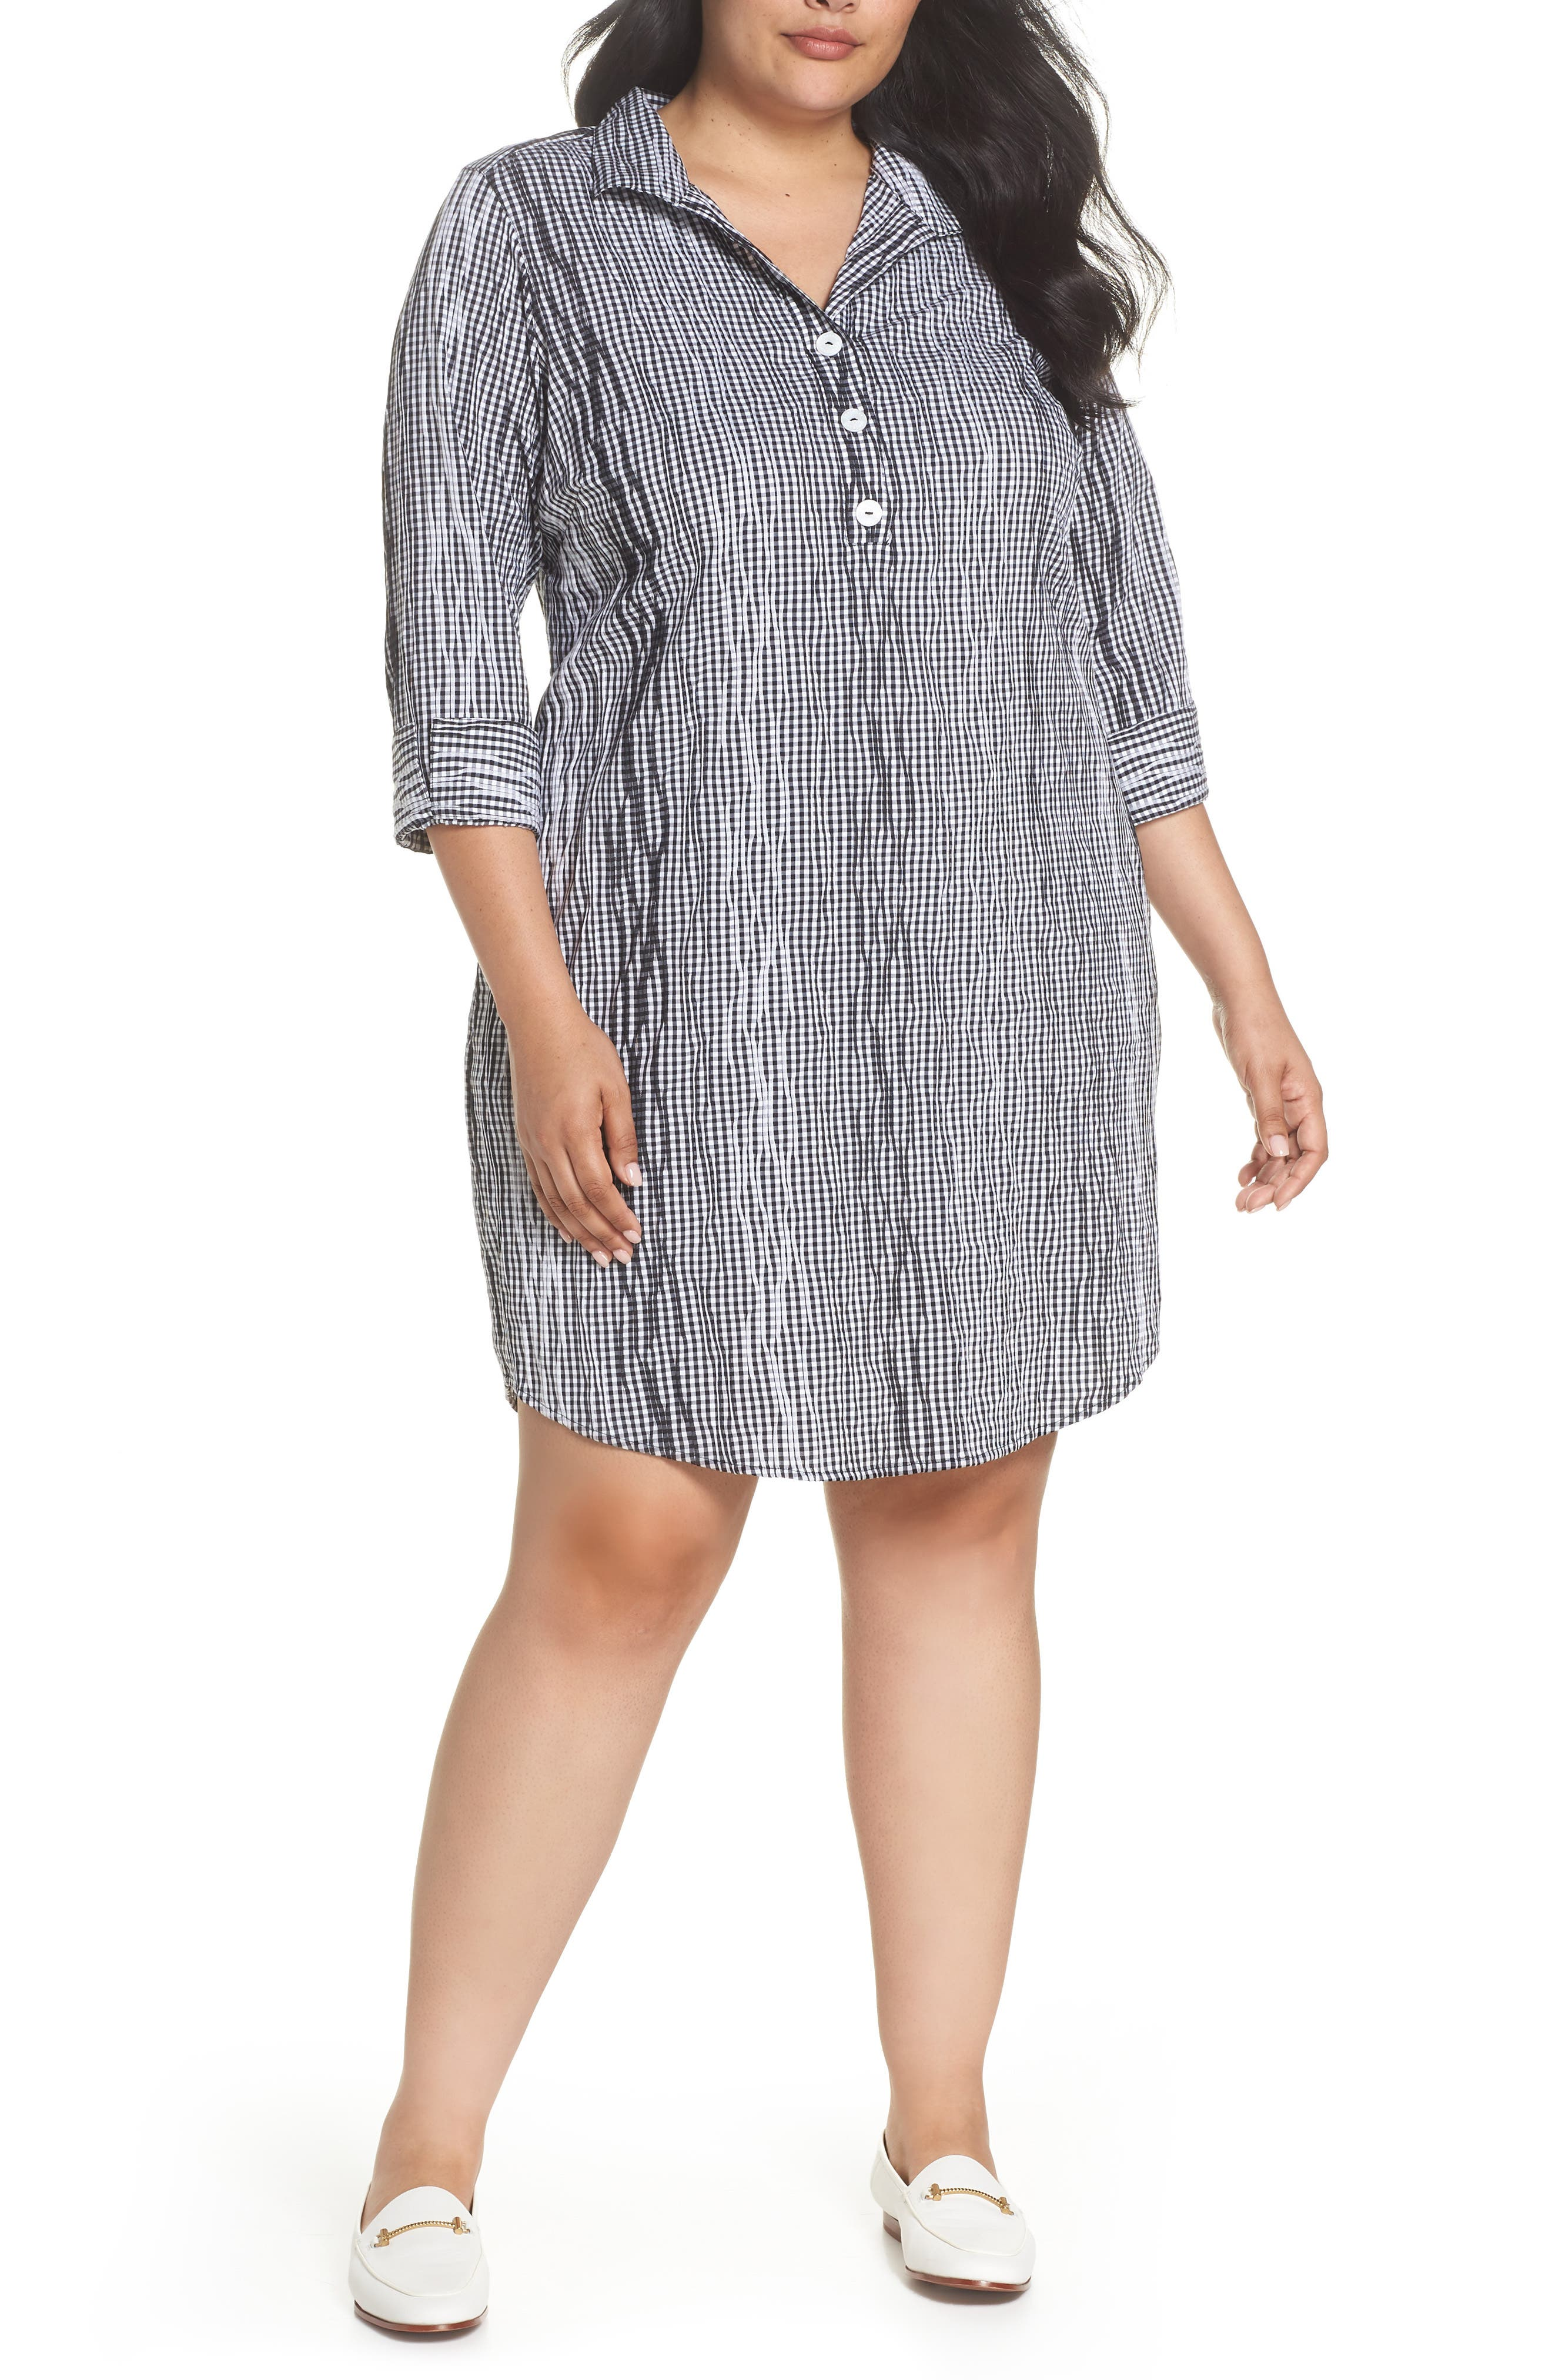 Miri Crinkle Gingham Shirtdress,                             Main thumbnail 1, color,                             001